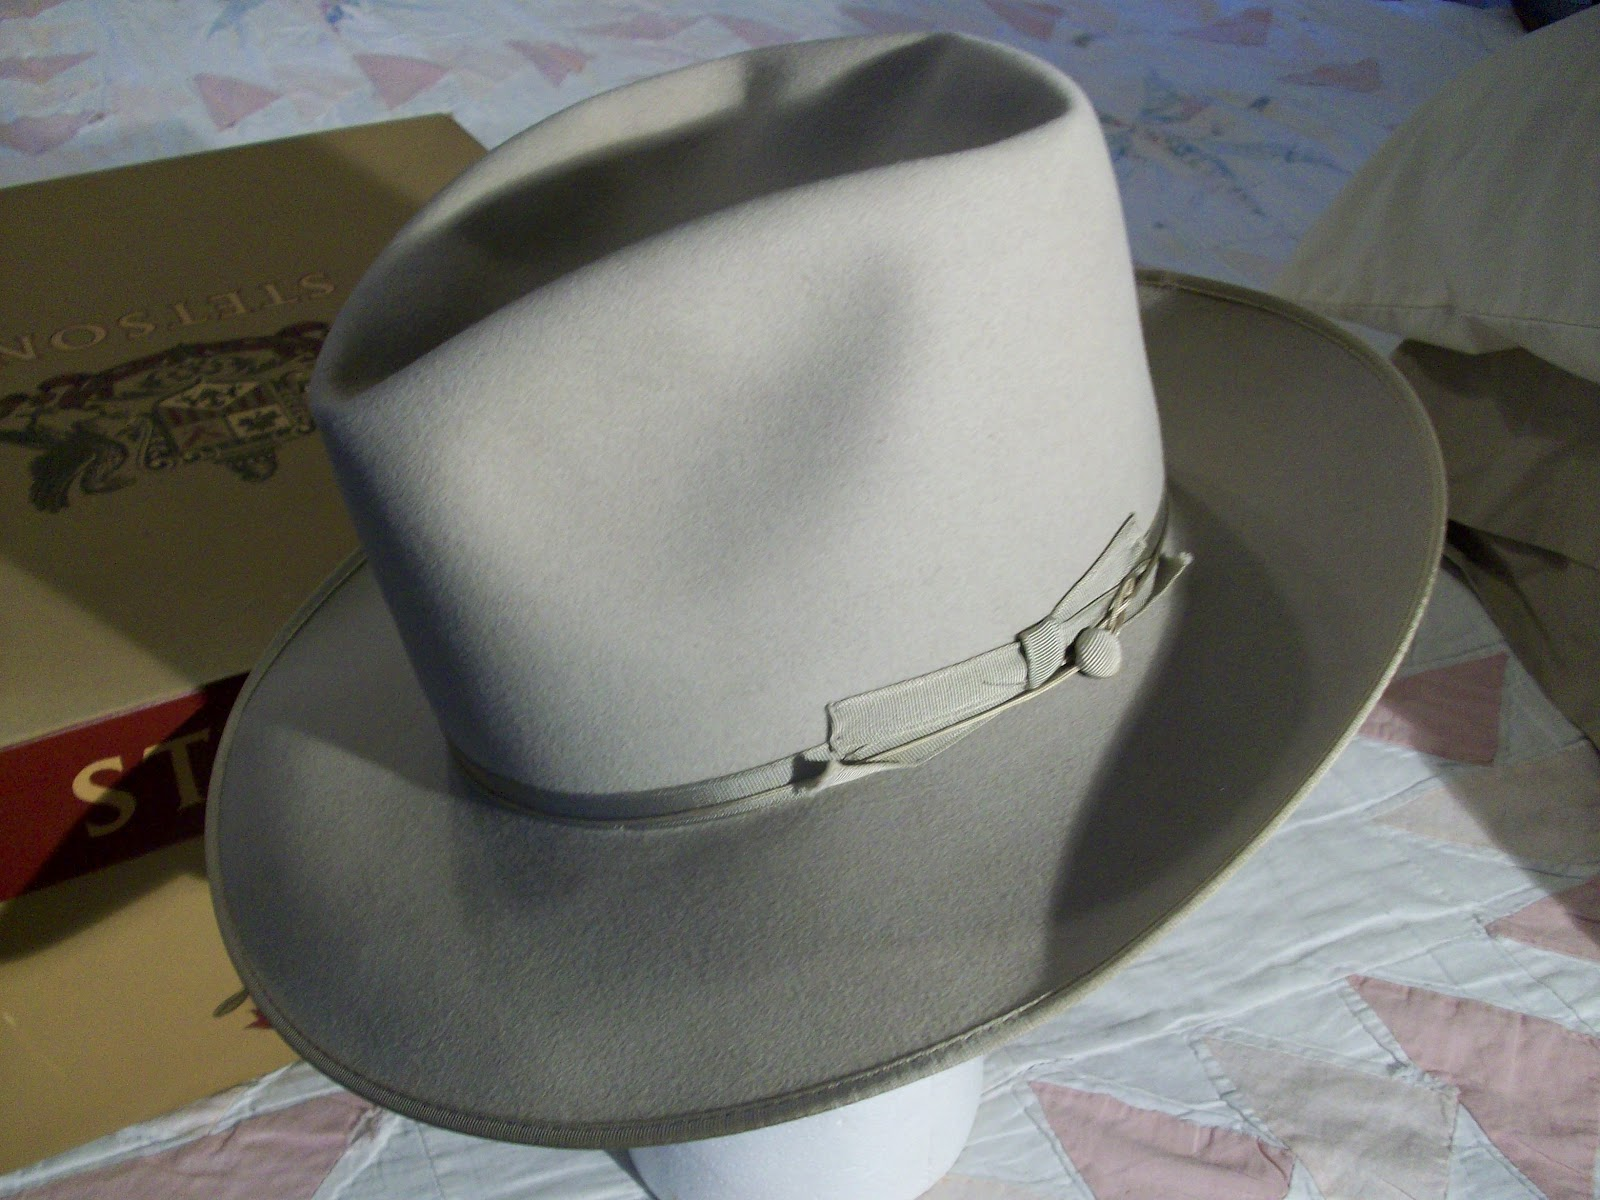 9c4ec63939a4b Stetson Royal Deluxe Open Road 7 8 with Box